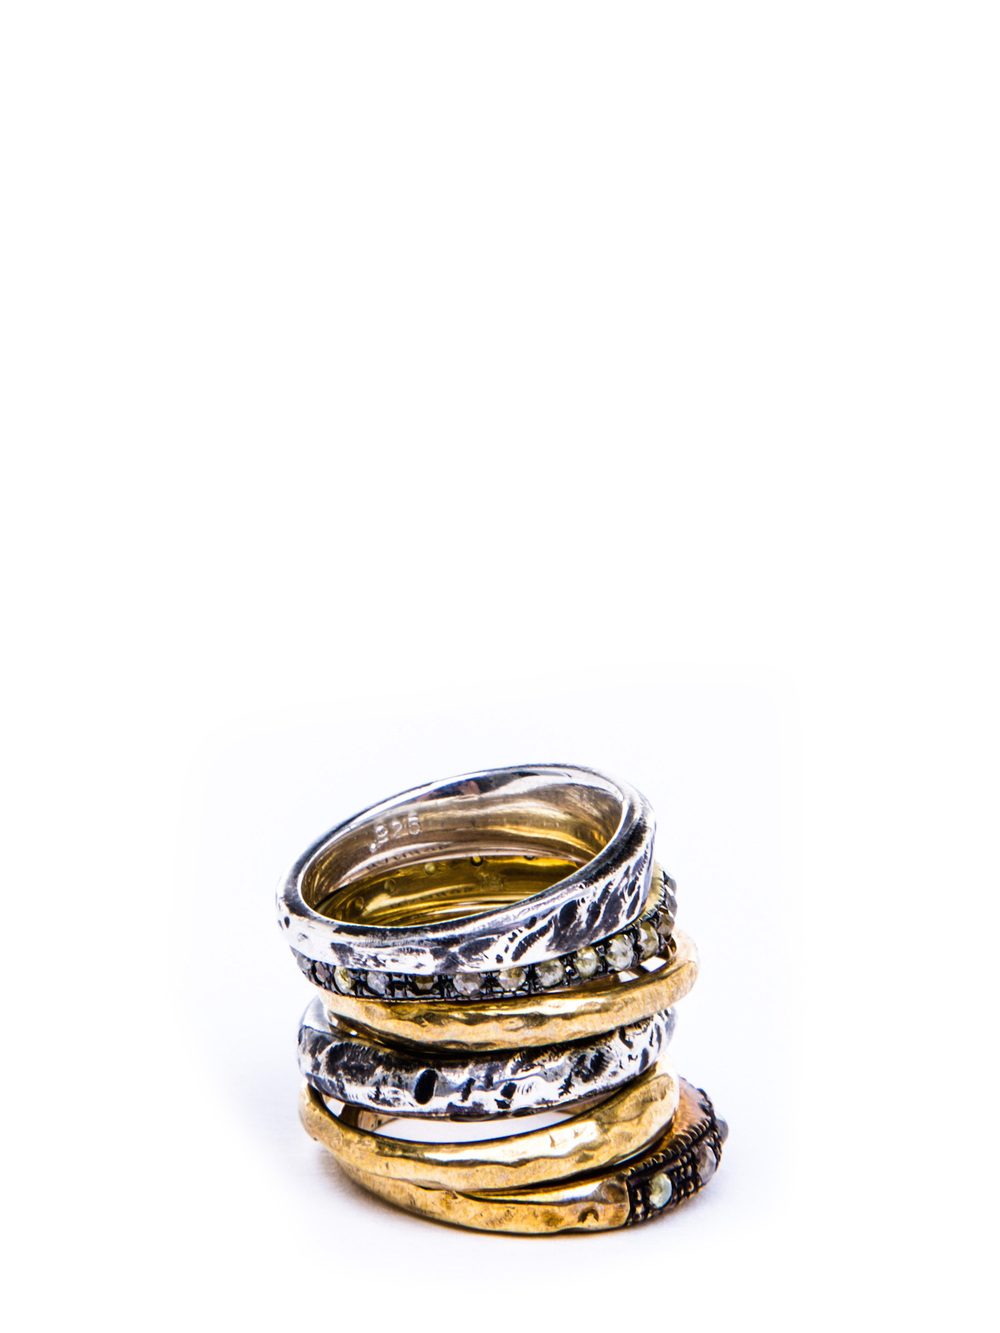 ENKI 6 BAND RING image